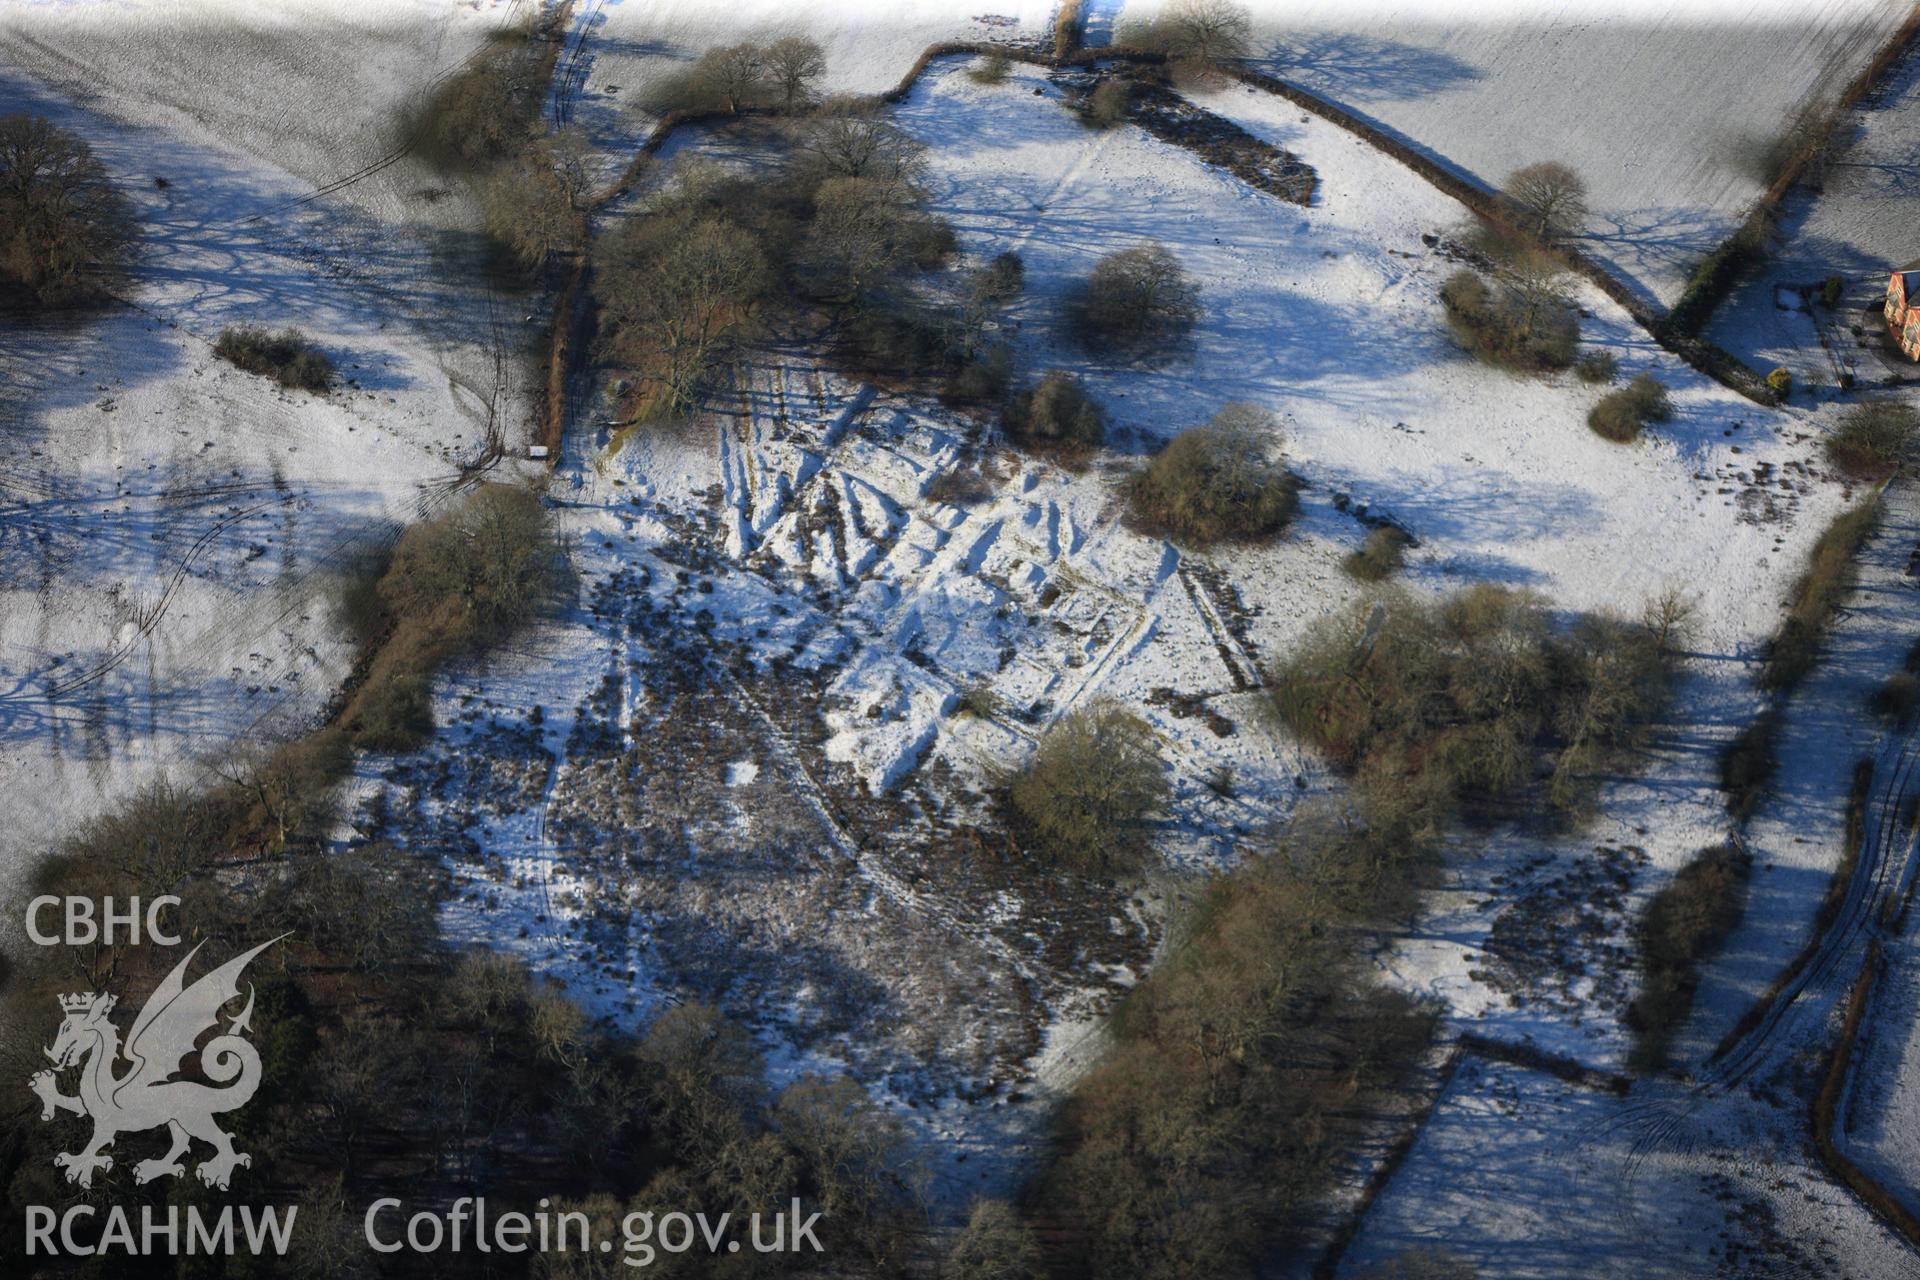 Castell Collen Roman fort, north west of Llandrindod Wells. Oblique aerial photograph taken during the Royal Commission?s programme of archaeological aerial reconnaissance by Toby Driver on 15th January 2013.